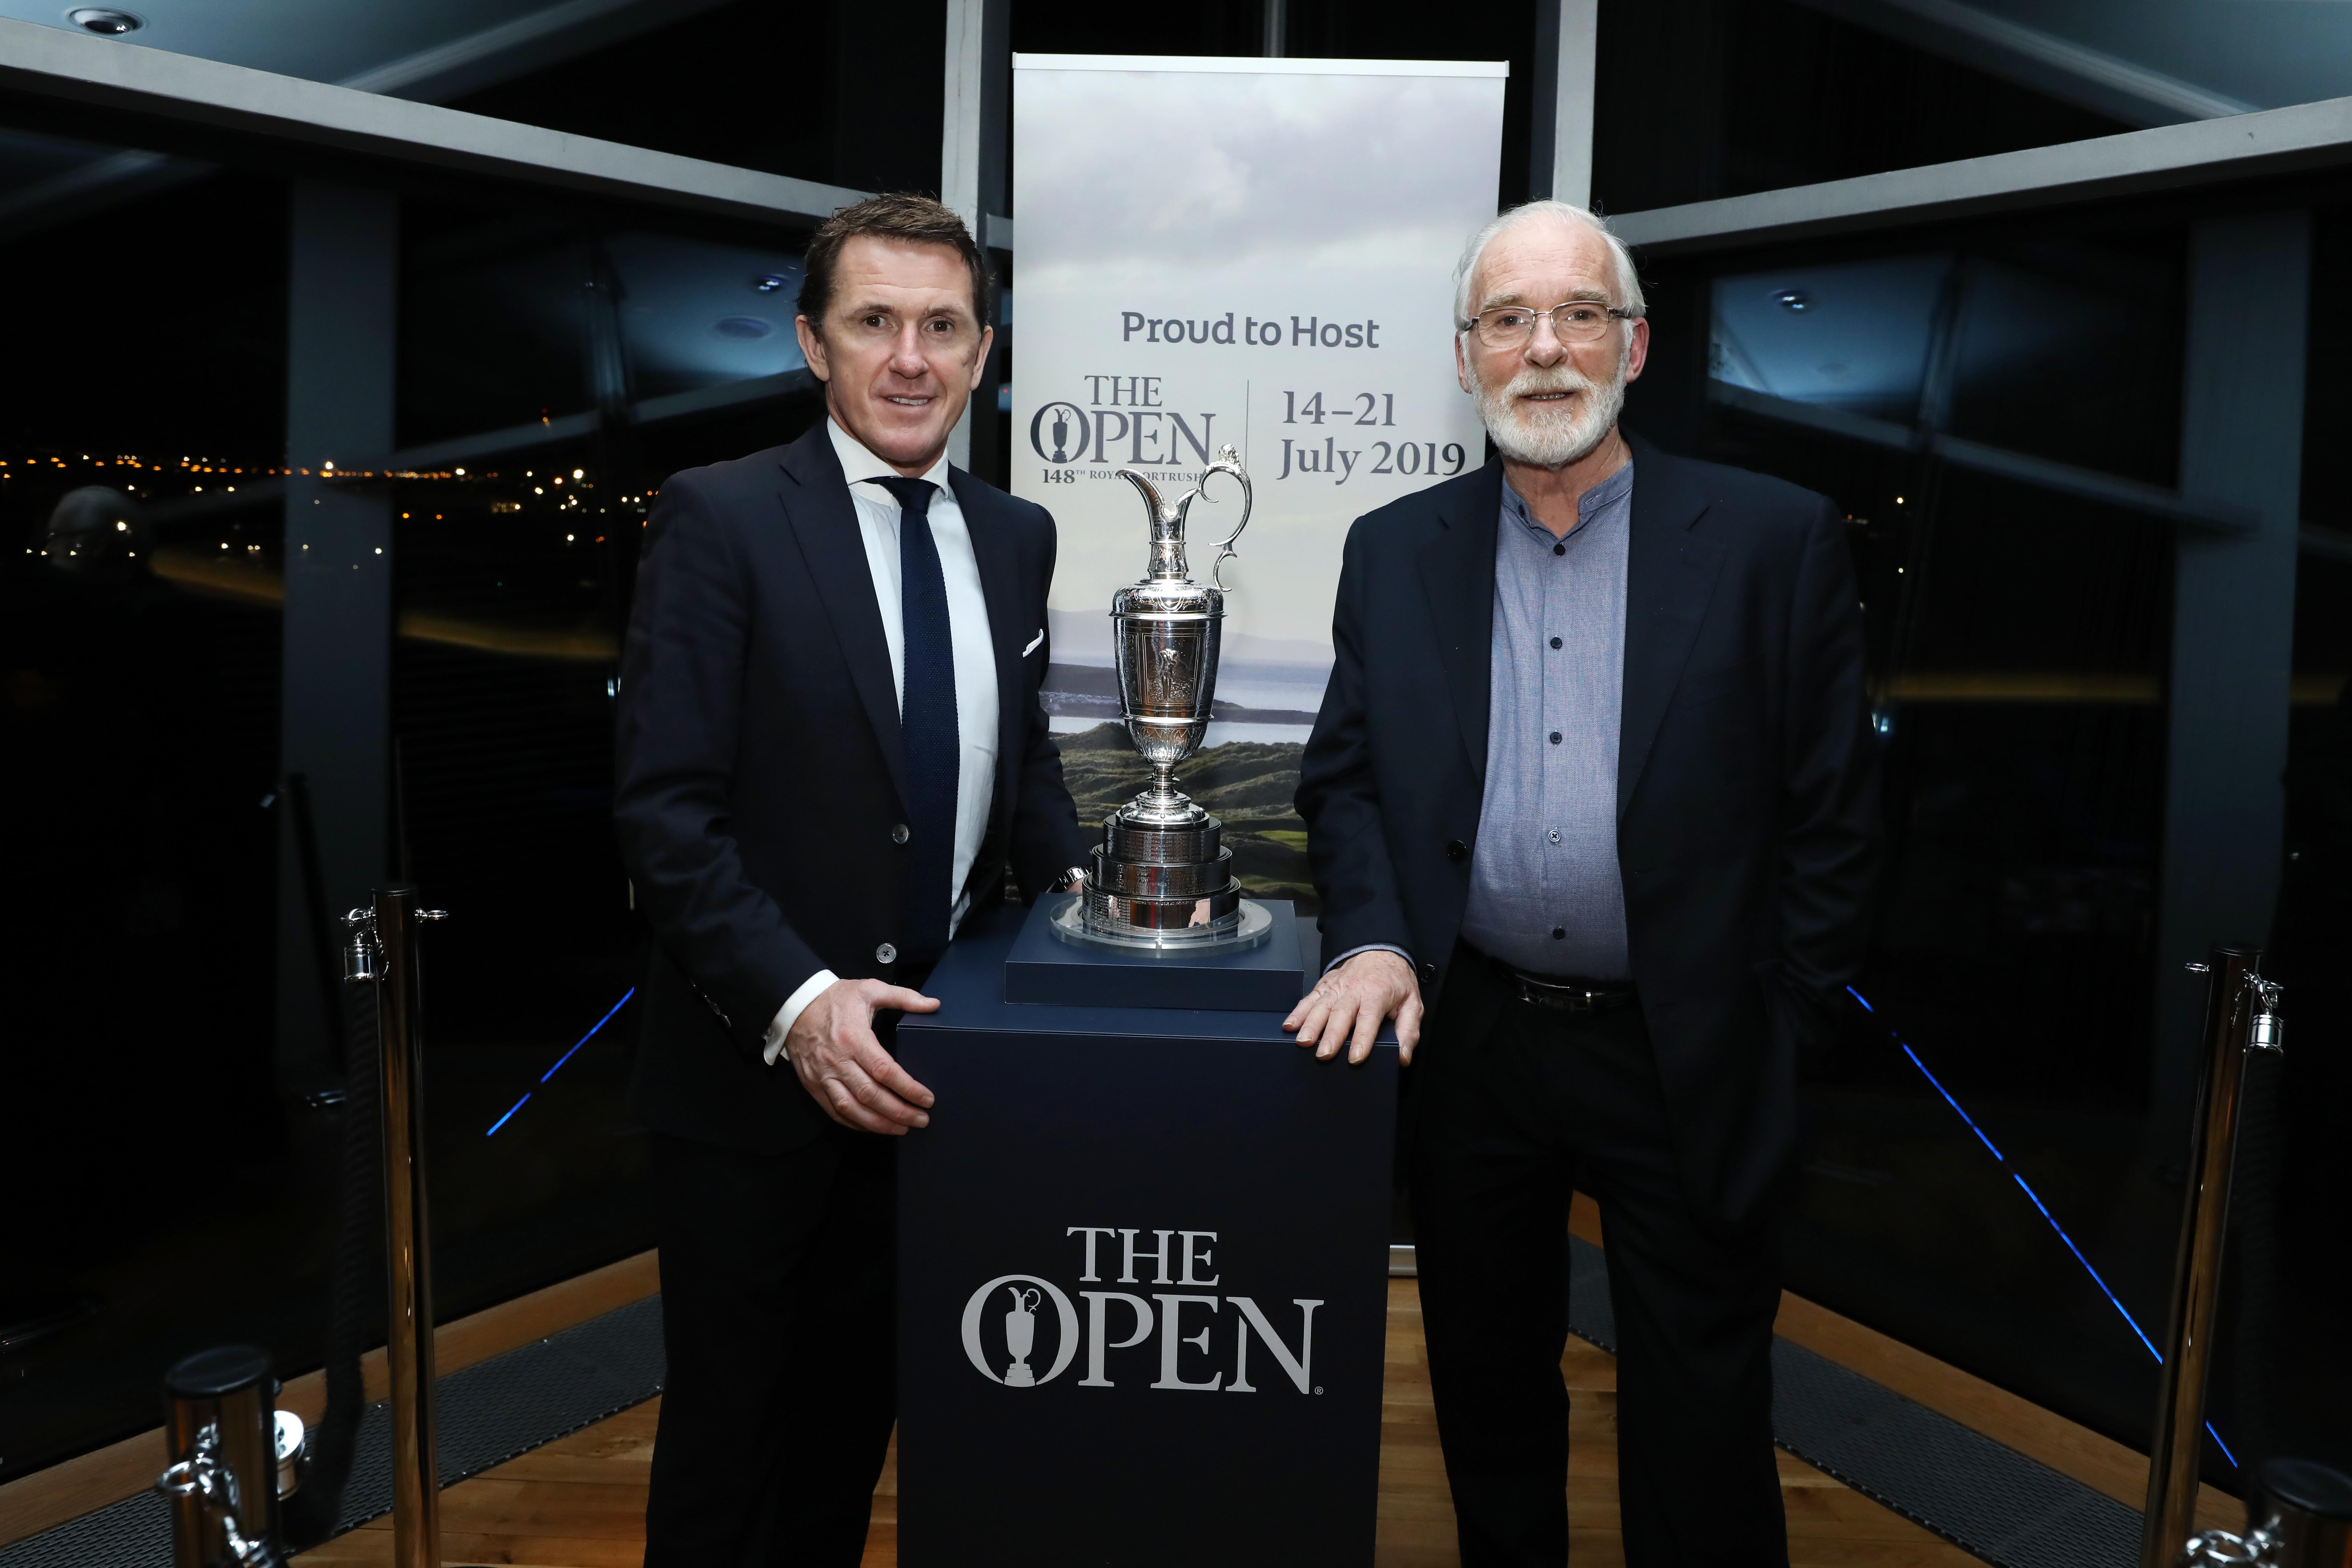 Sir Anthony McCoy speaks at Tourism NI's launch of 148th Open Golf